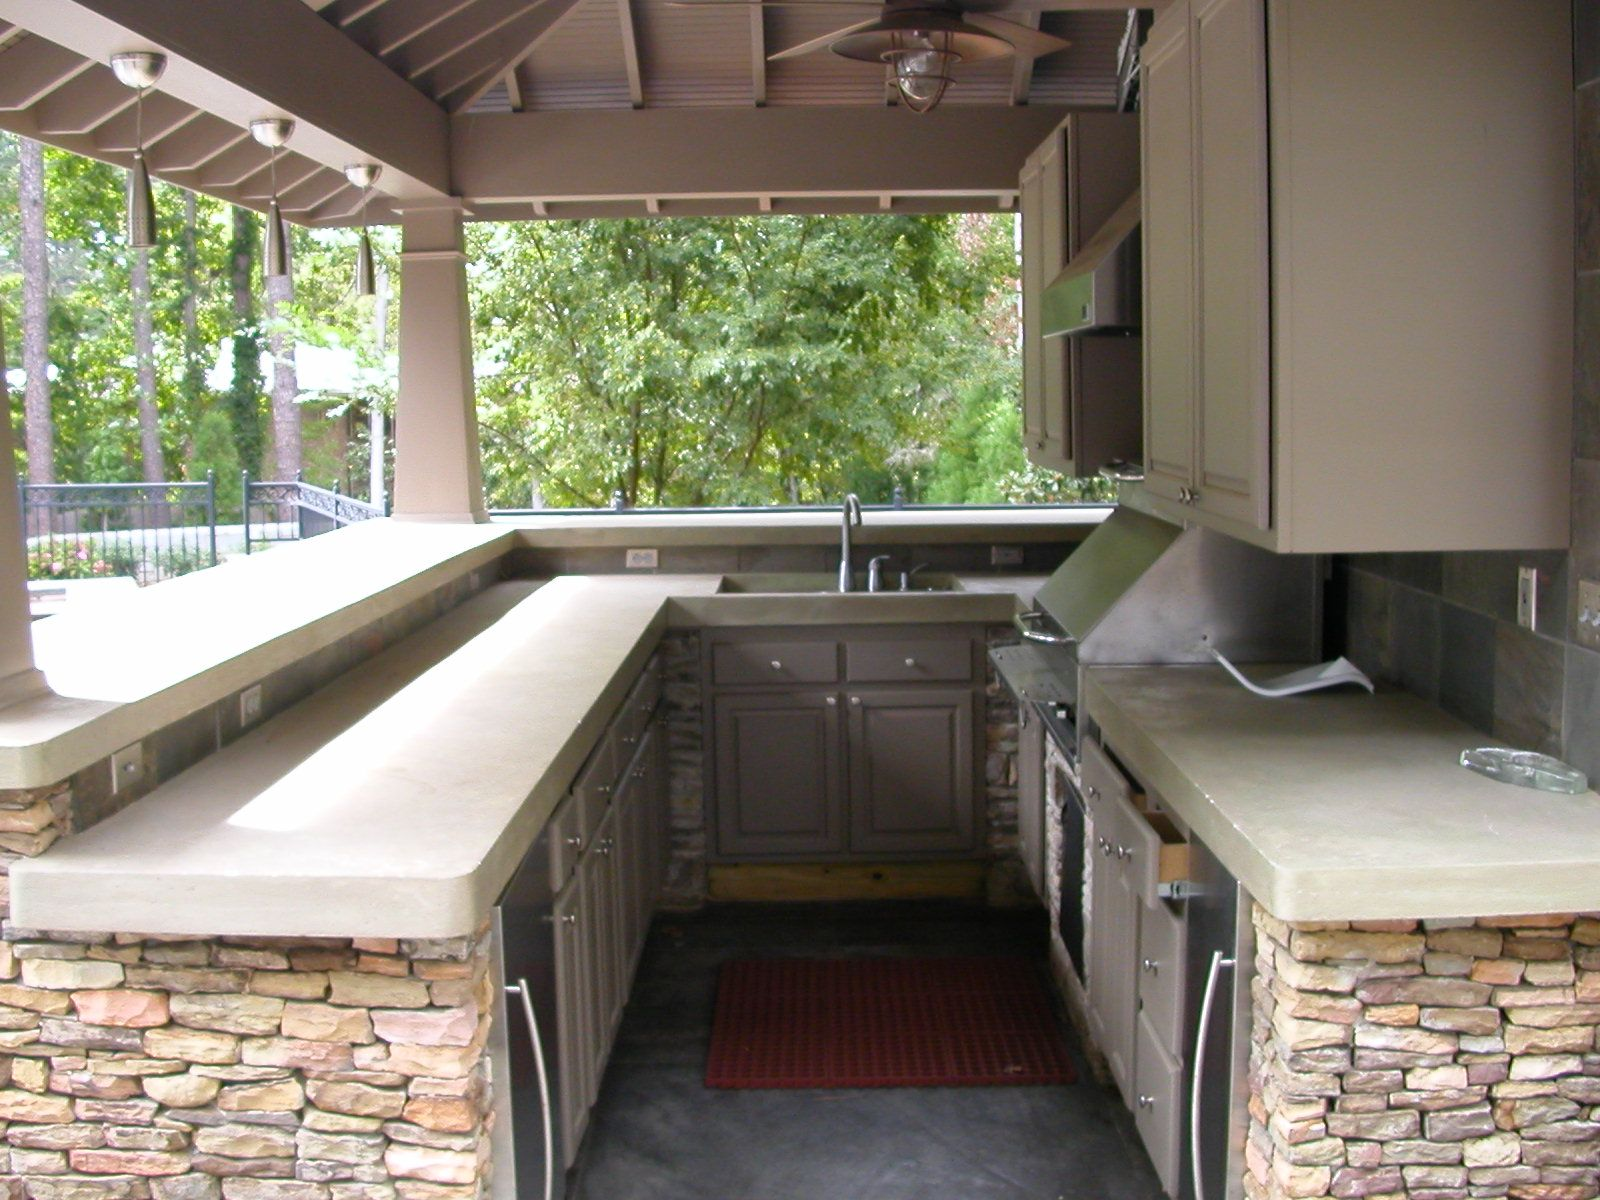 Outdoor kitchen designs with roofs shaped outdoor kitchen area